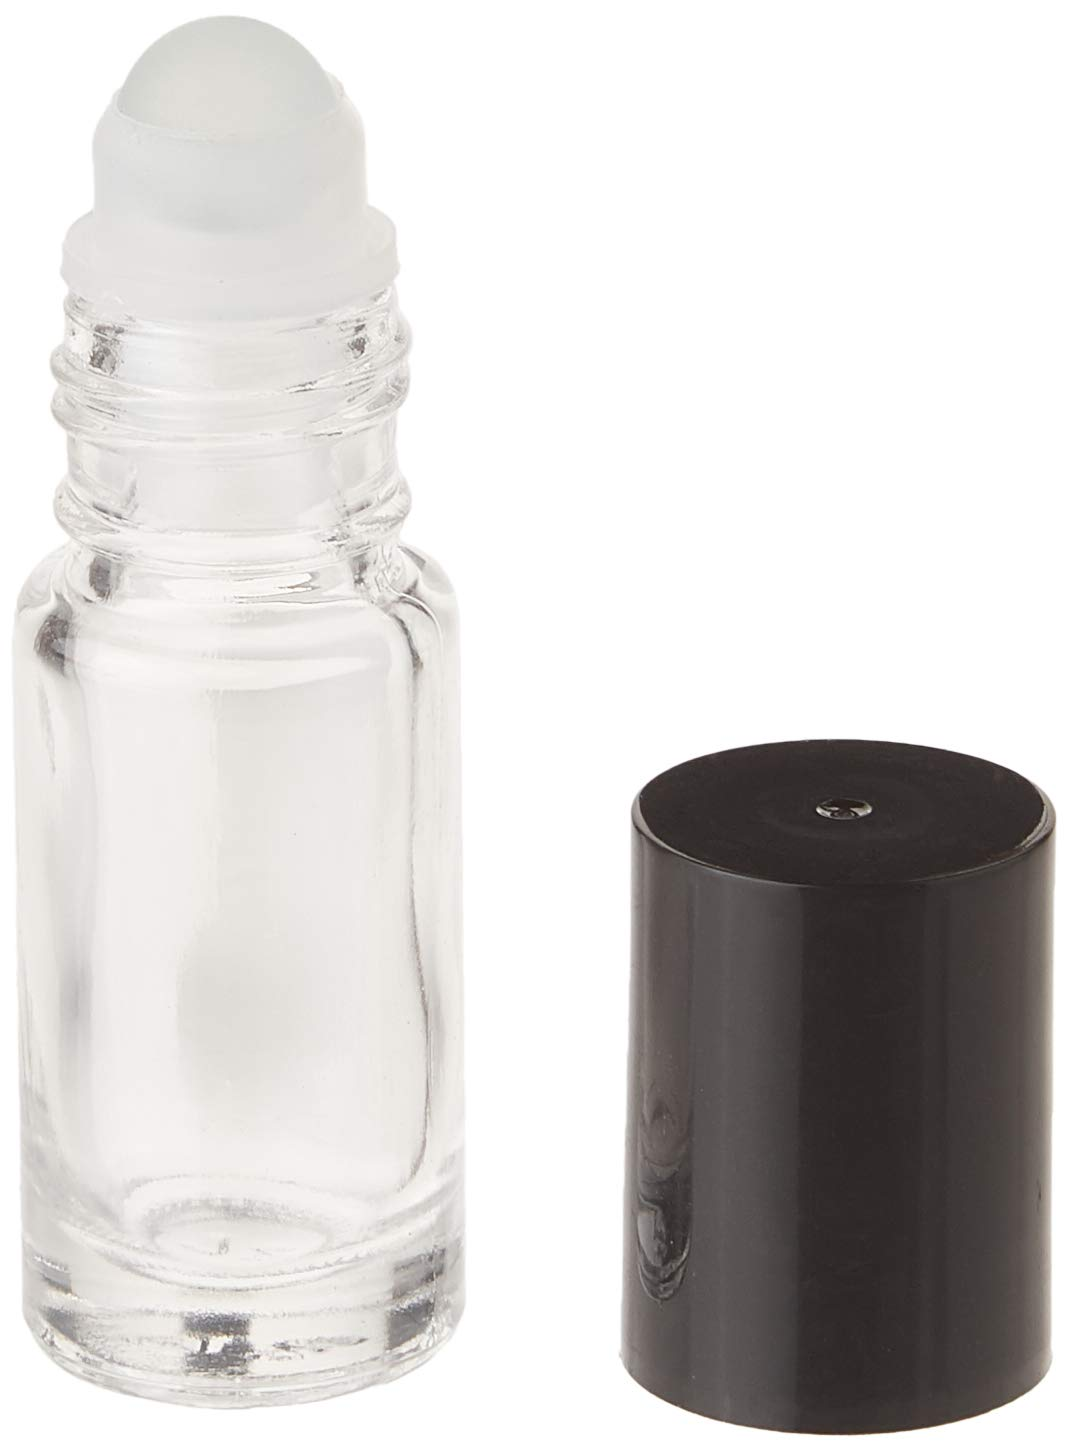 Premium Vials B18-144 Clear Roll-on with Cap Pack of 144 1//6 oz Capacity